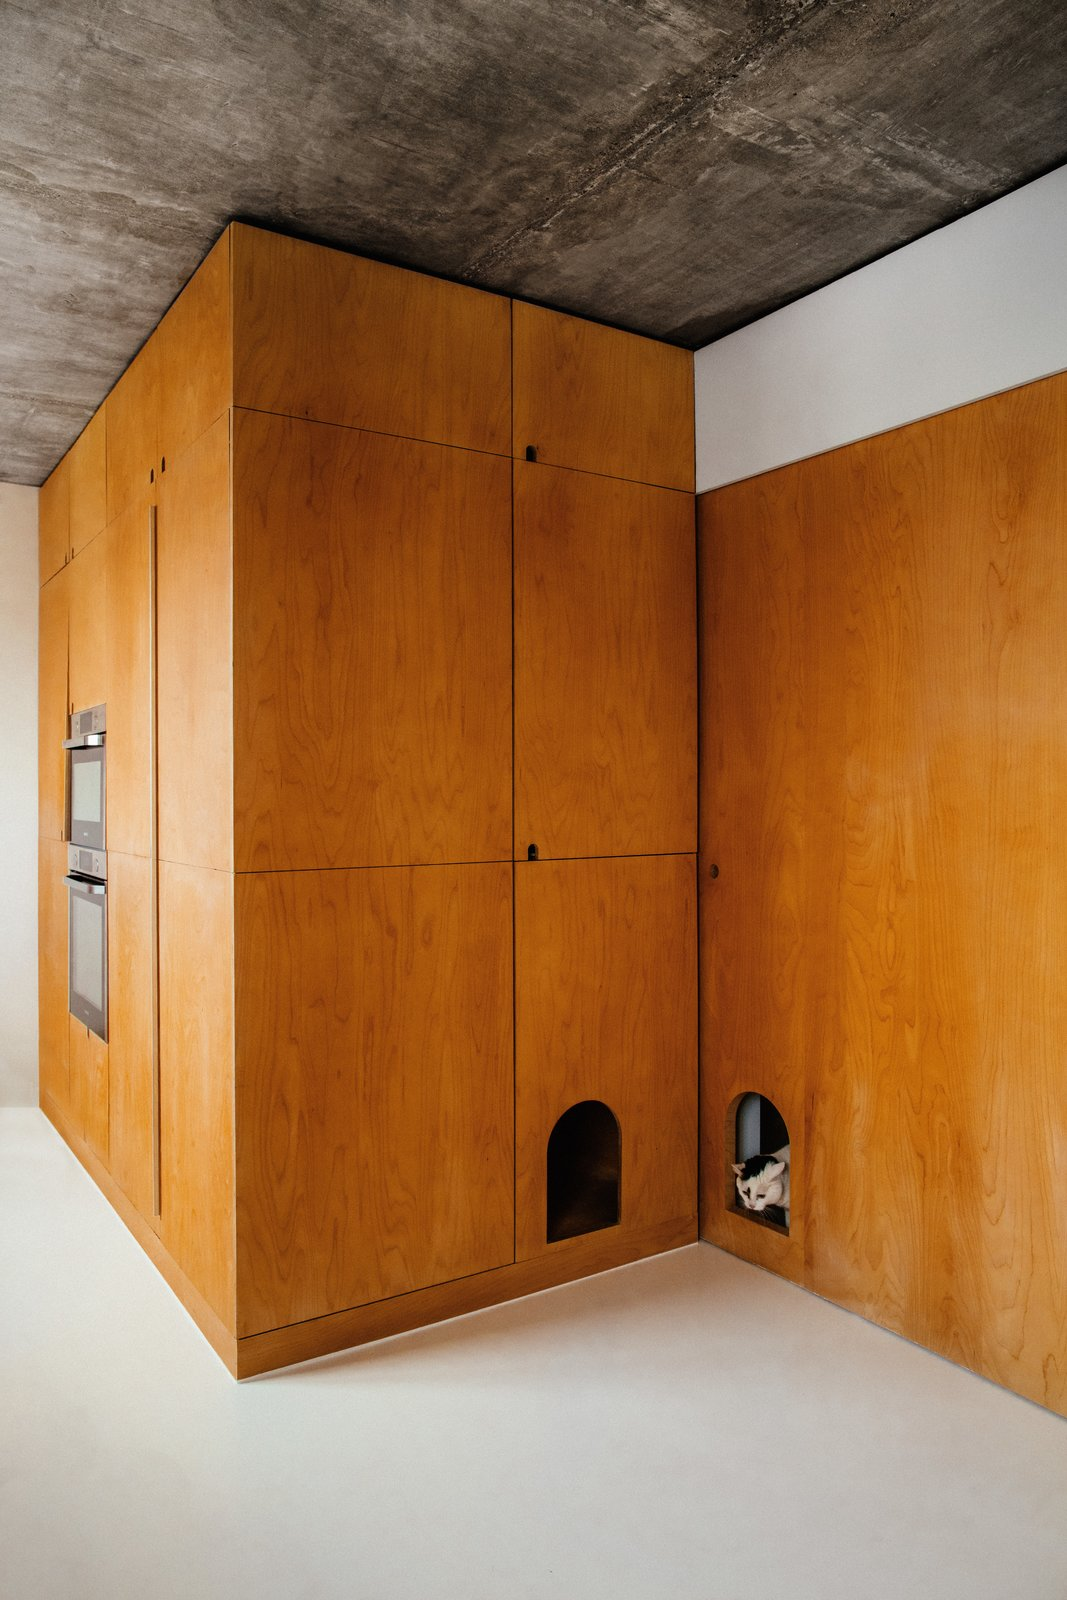 Doors, Sliding Door Type, Interior, and Wood The sliding wall on the upper floor has a miniature doorway for Sacha the cat; the second opening contains his litter box.  Photos from This Live/Work Duplex in Paris Is Full of Kid- and Cat-Friendly Details